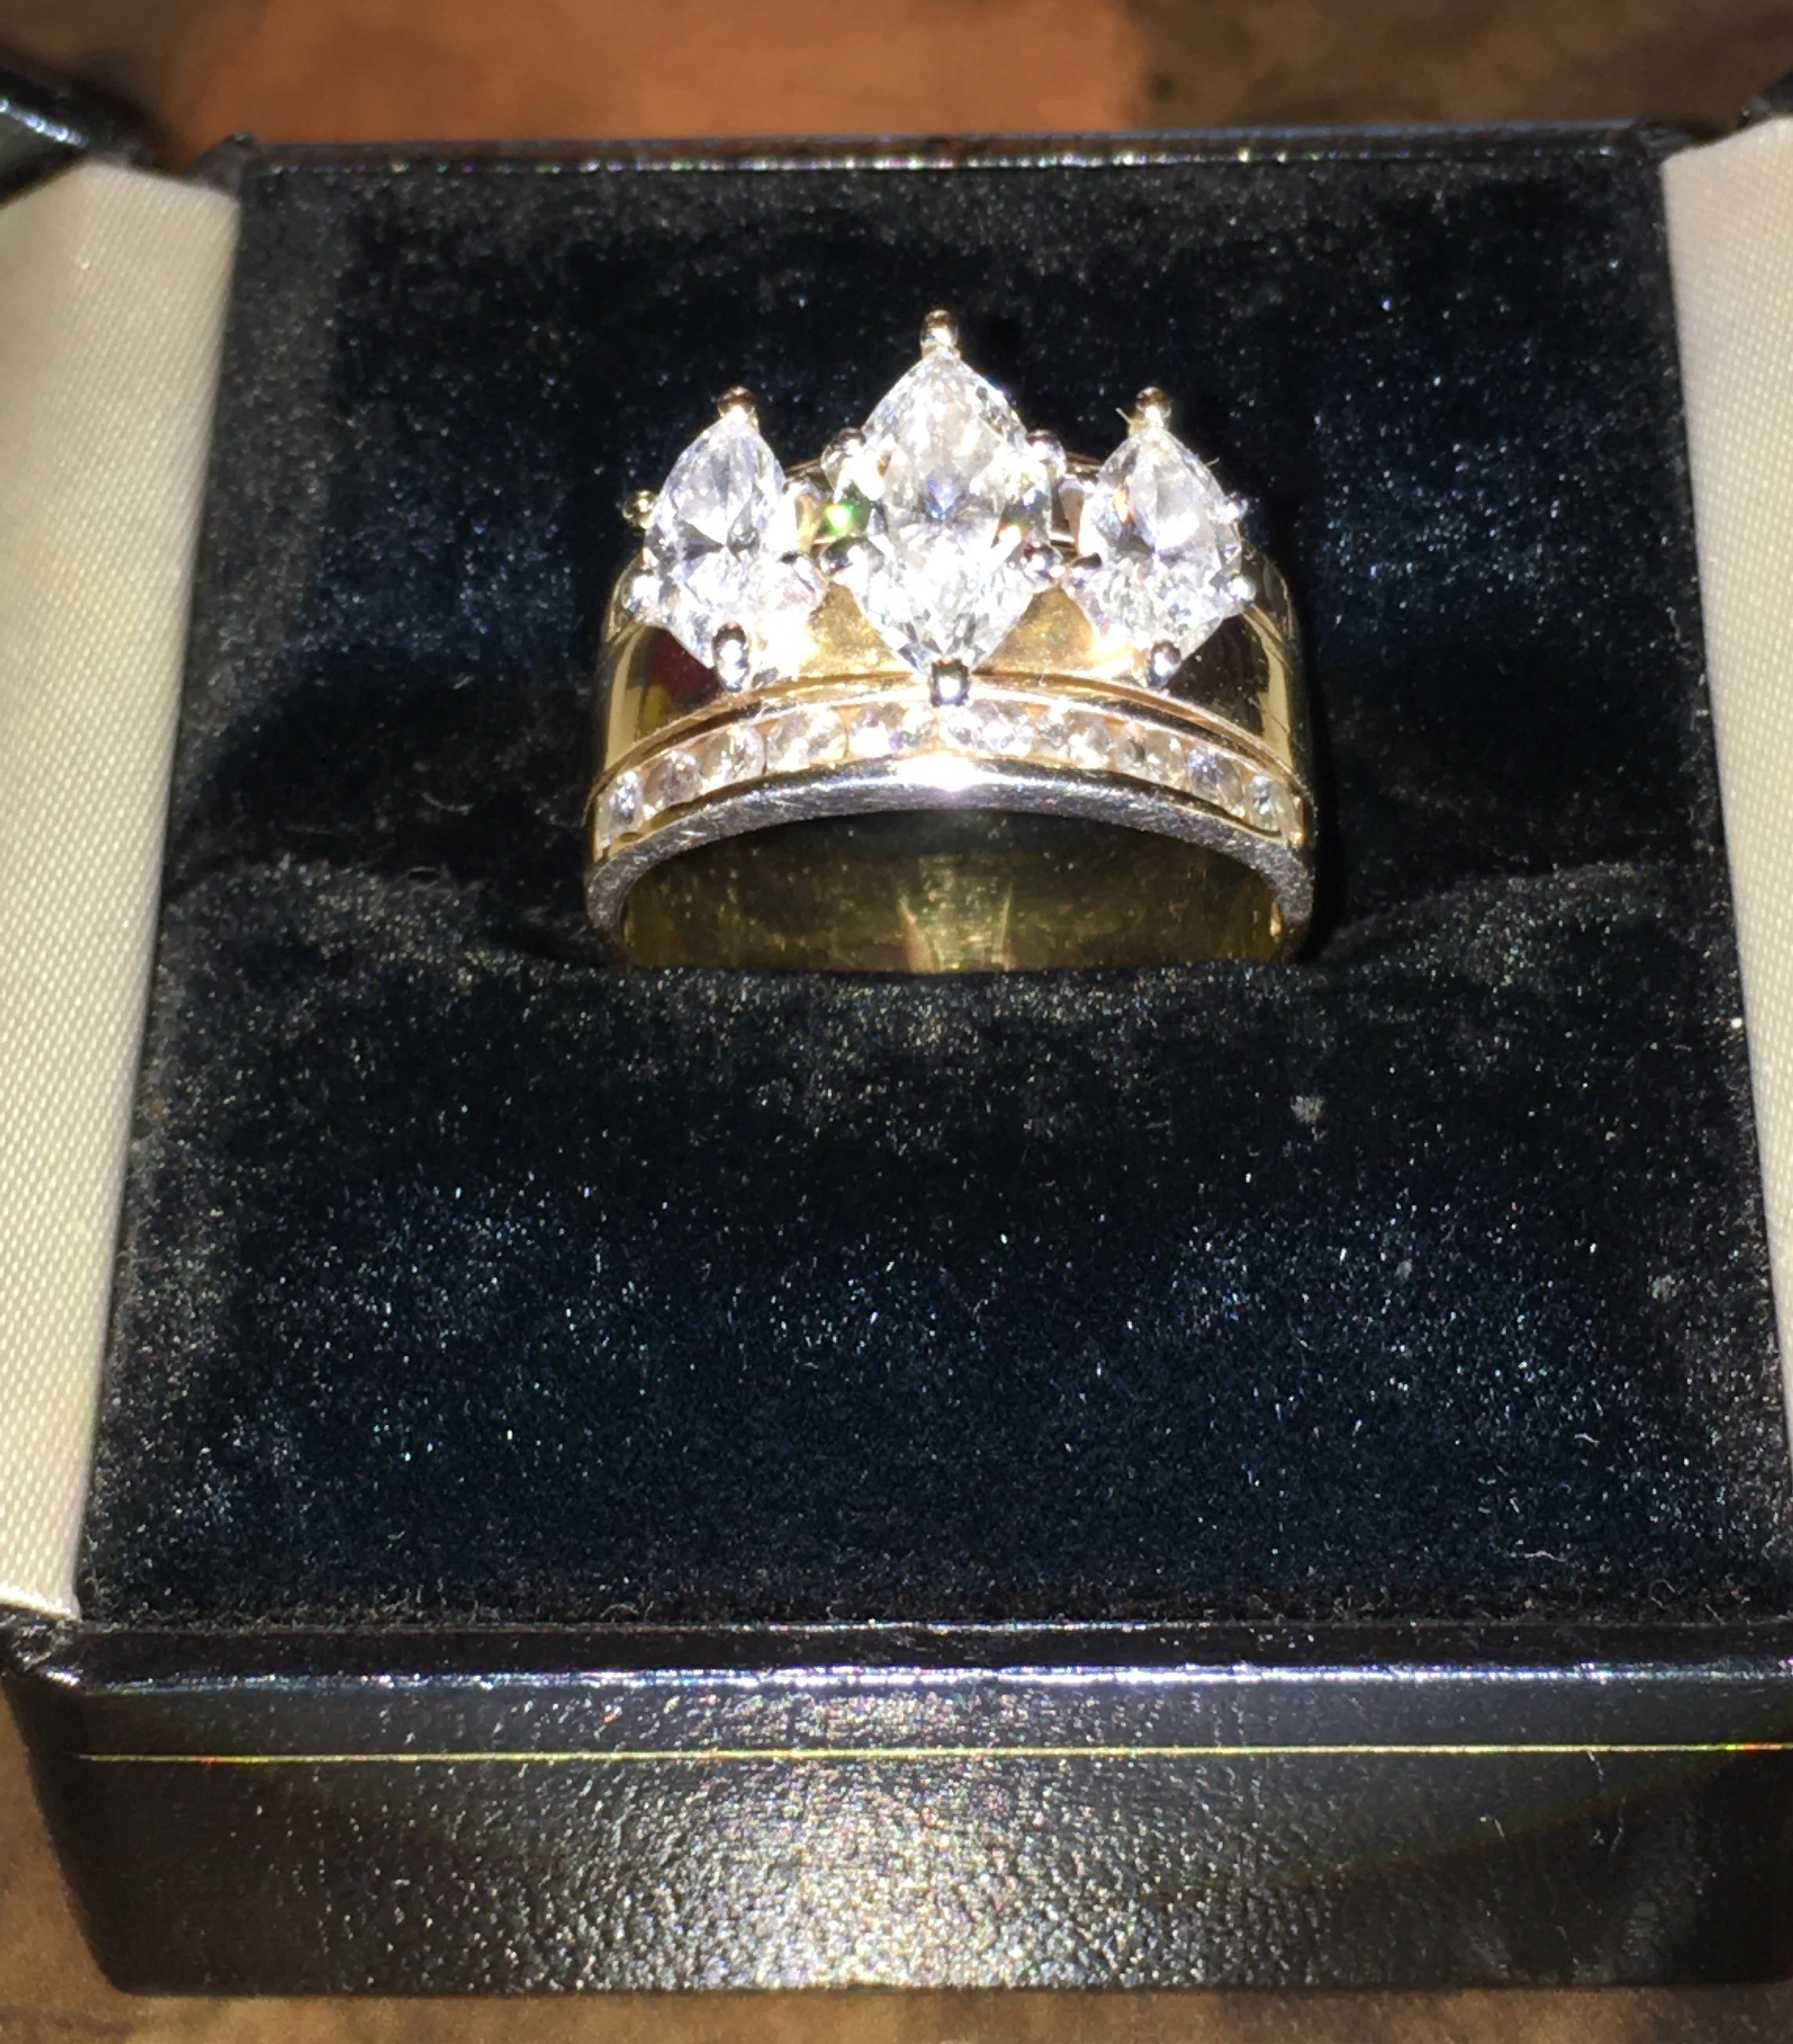 2.76 Carat TW 3 stone Marquise setting with excellent clarity